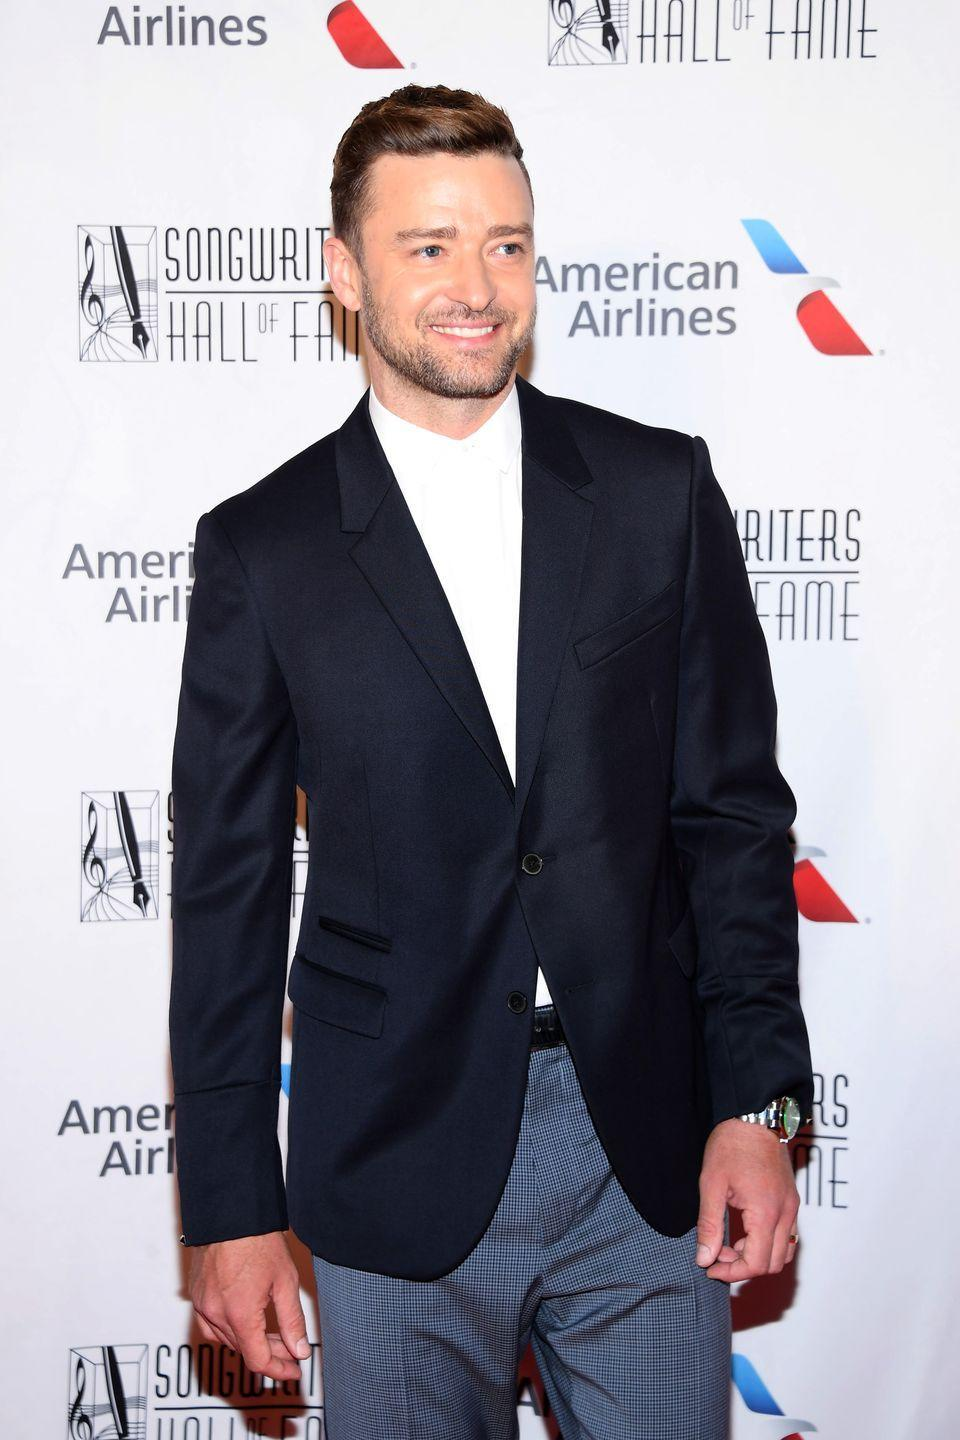 <p>JT is still a big pop star, but he's gone a bit folksy (see: his 2018 studio album <em>Man of the Woods</em>) and is now married to actress Jessica Biel (shout-out to another '90s star!), with whom he has two sons, Silas and Phineas. </p>